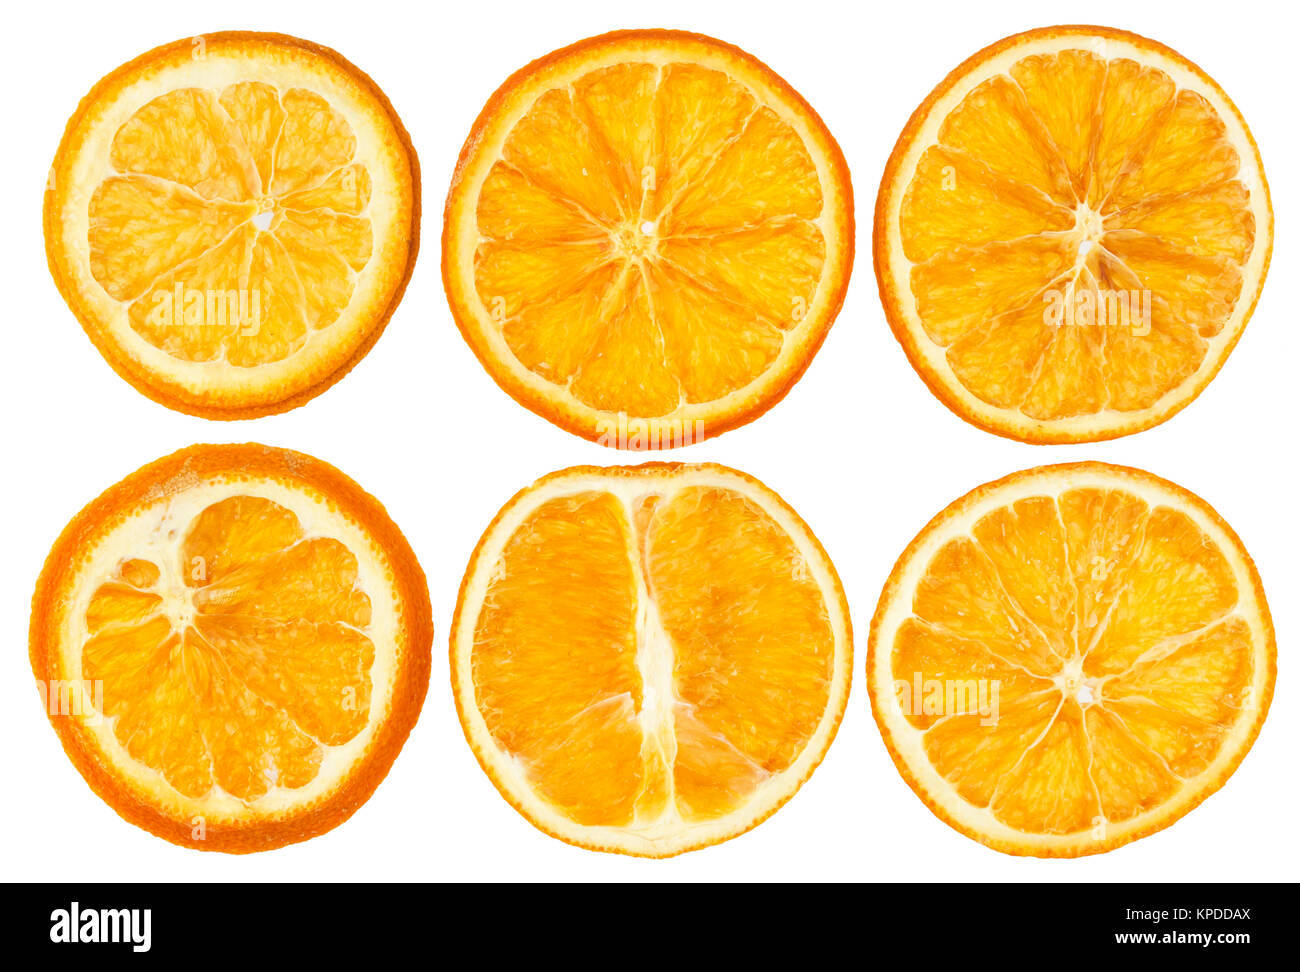 Dried oranges isolated on white background closeup - Stock Image